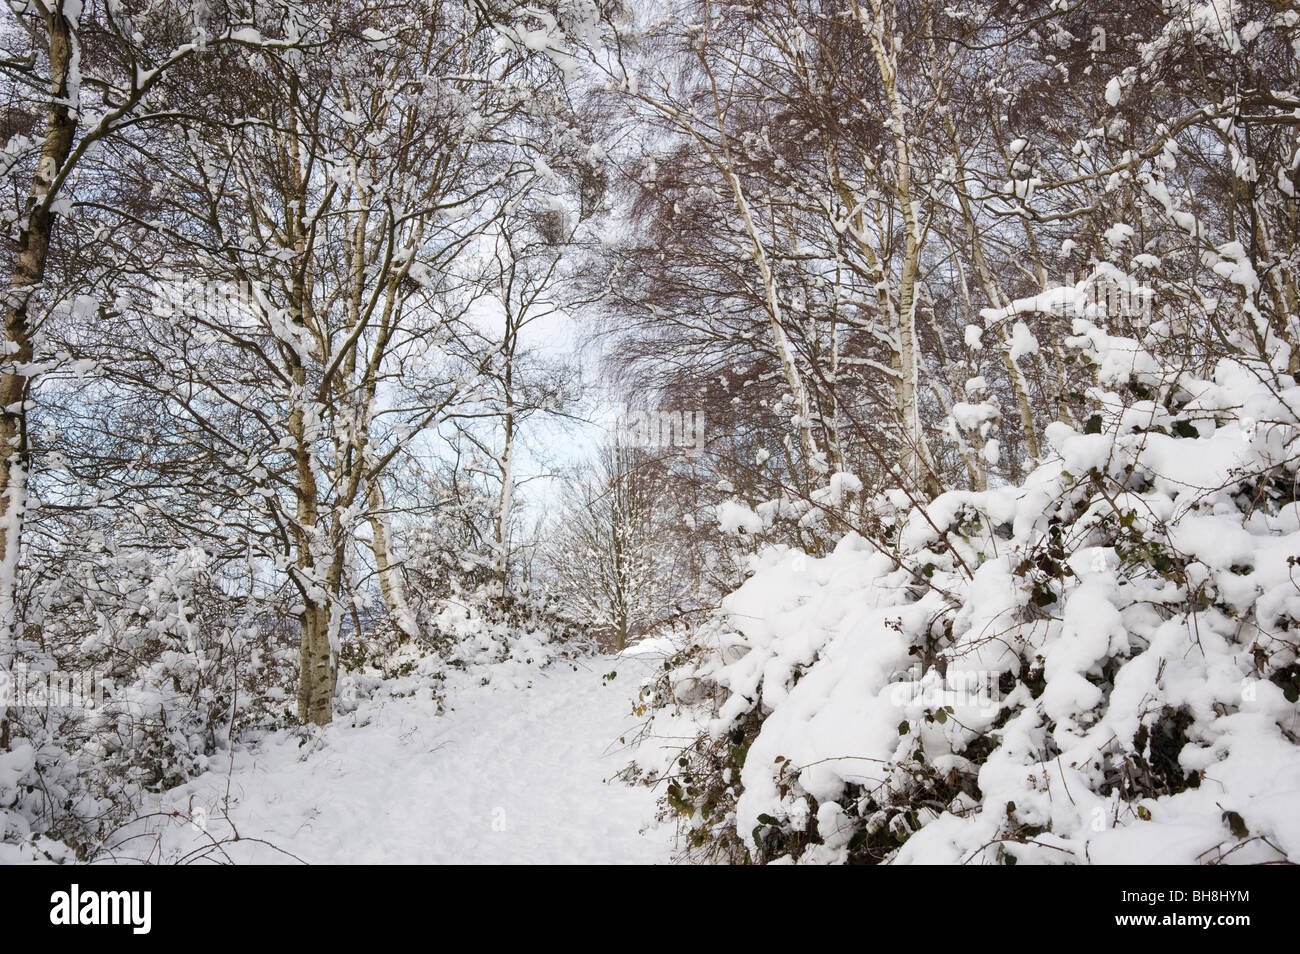 The Ridgeway Path in the Chilterns, Aston  Rowan Oxfordshire, UK after a snowstomr - Stock Image